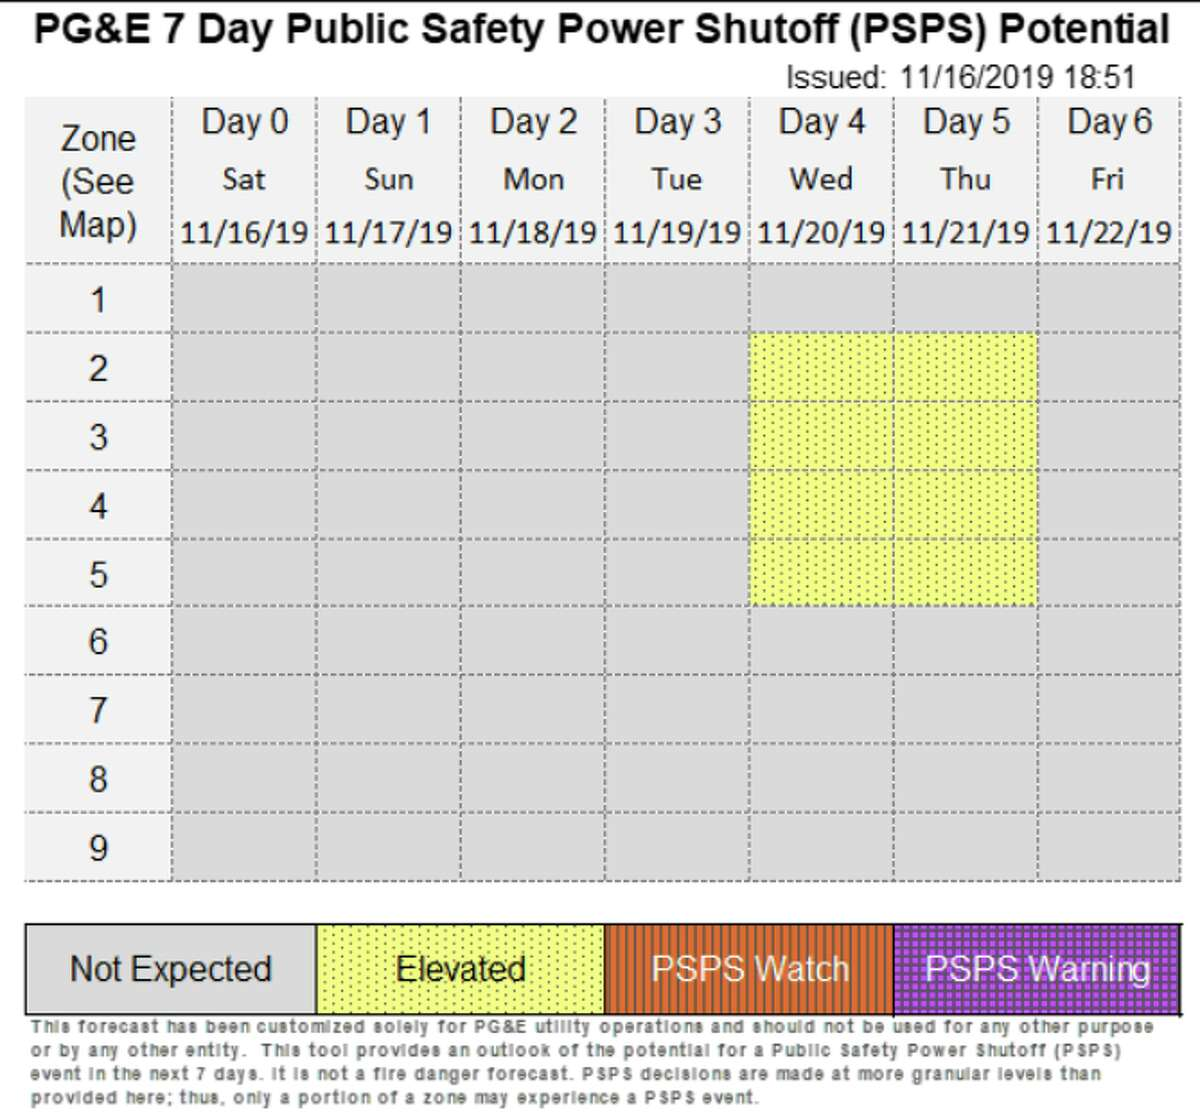 """PG&E's weather forecast indicates an """"elevated"""" risk of a public safety power shut-off on Nov. 20-21, 2019."""